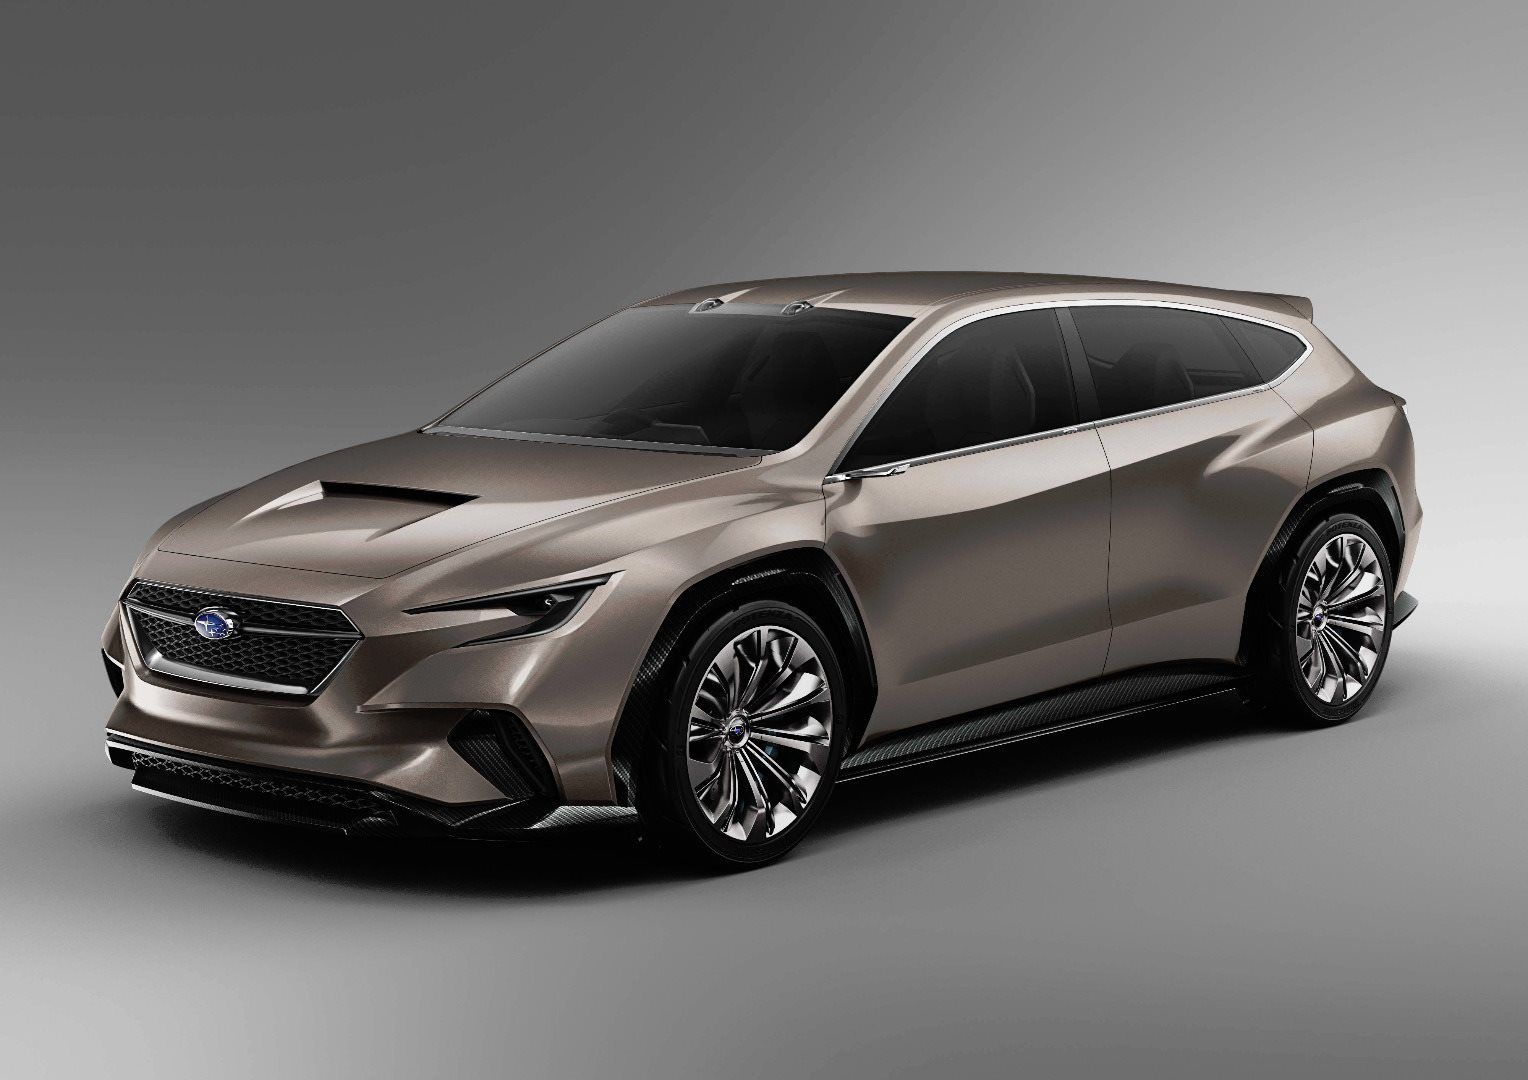 WORLD PREMIERE OF SUBARU VIZIV TOURER CONCEPT AT GENEVA INTERNATIONAL MOTOR SHOW